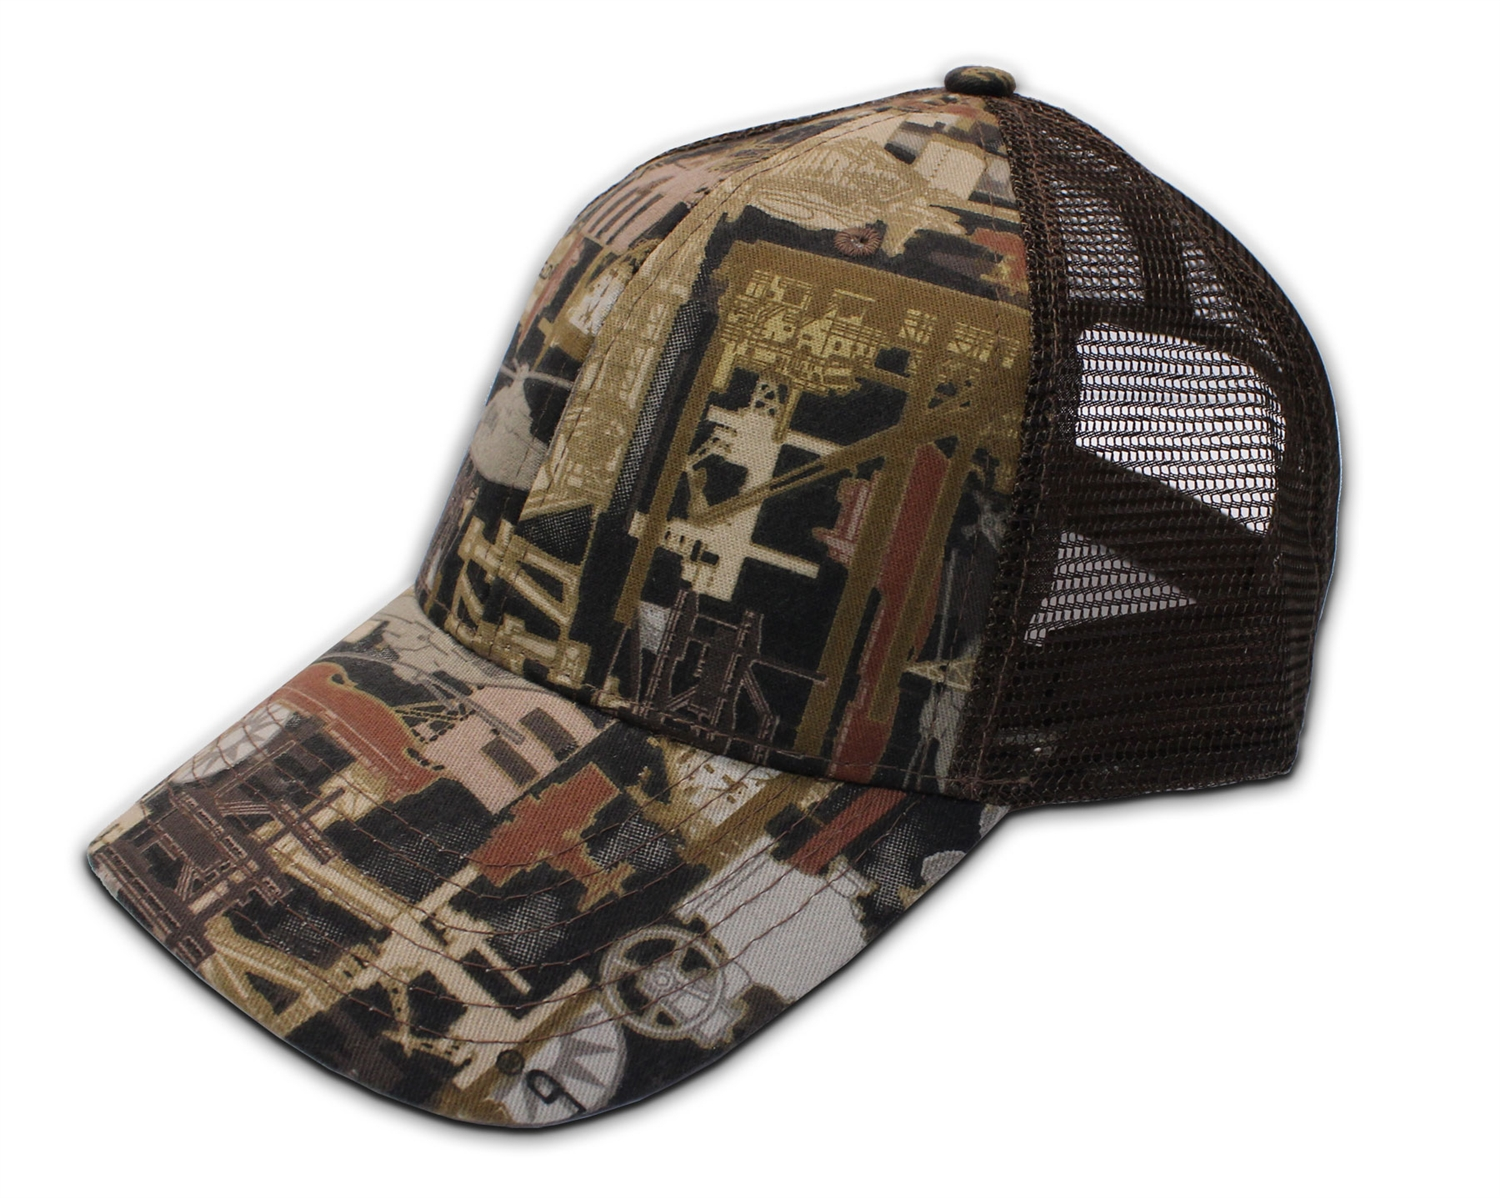 Kati Sportcap Oilfield Camo Brown Mesh Back Cap OIL5M-BLANK  8.00 In Stock  and Eligible for ... 587509474b2